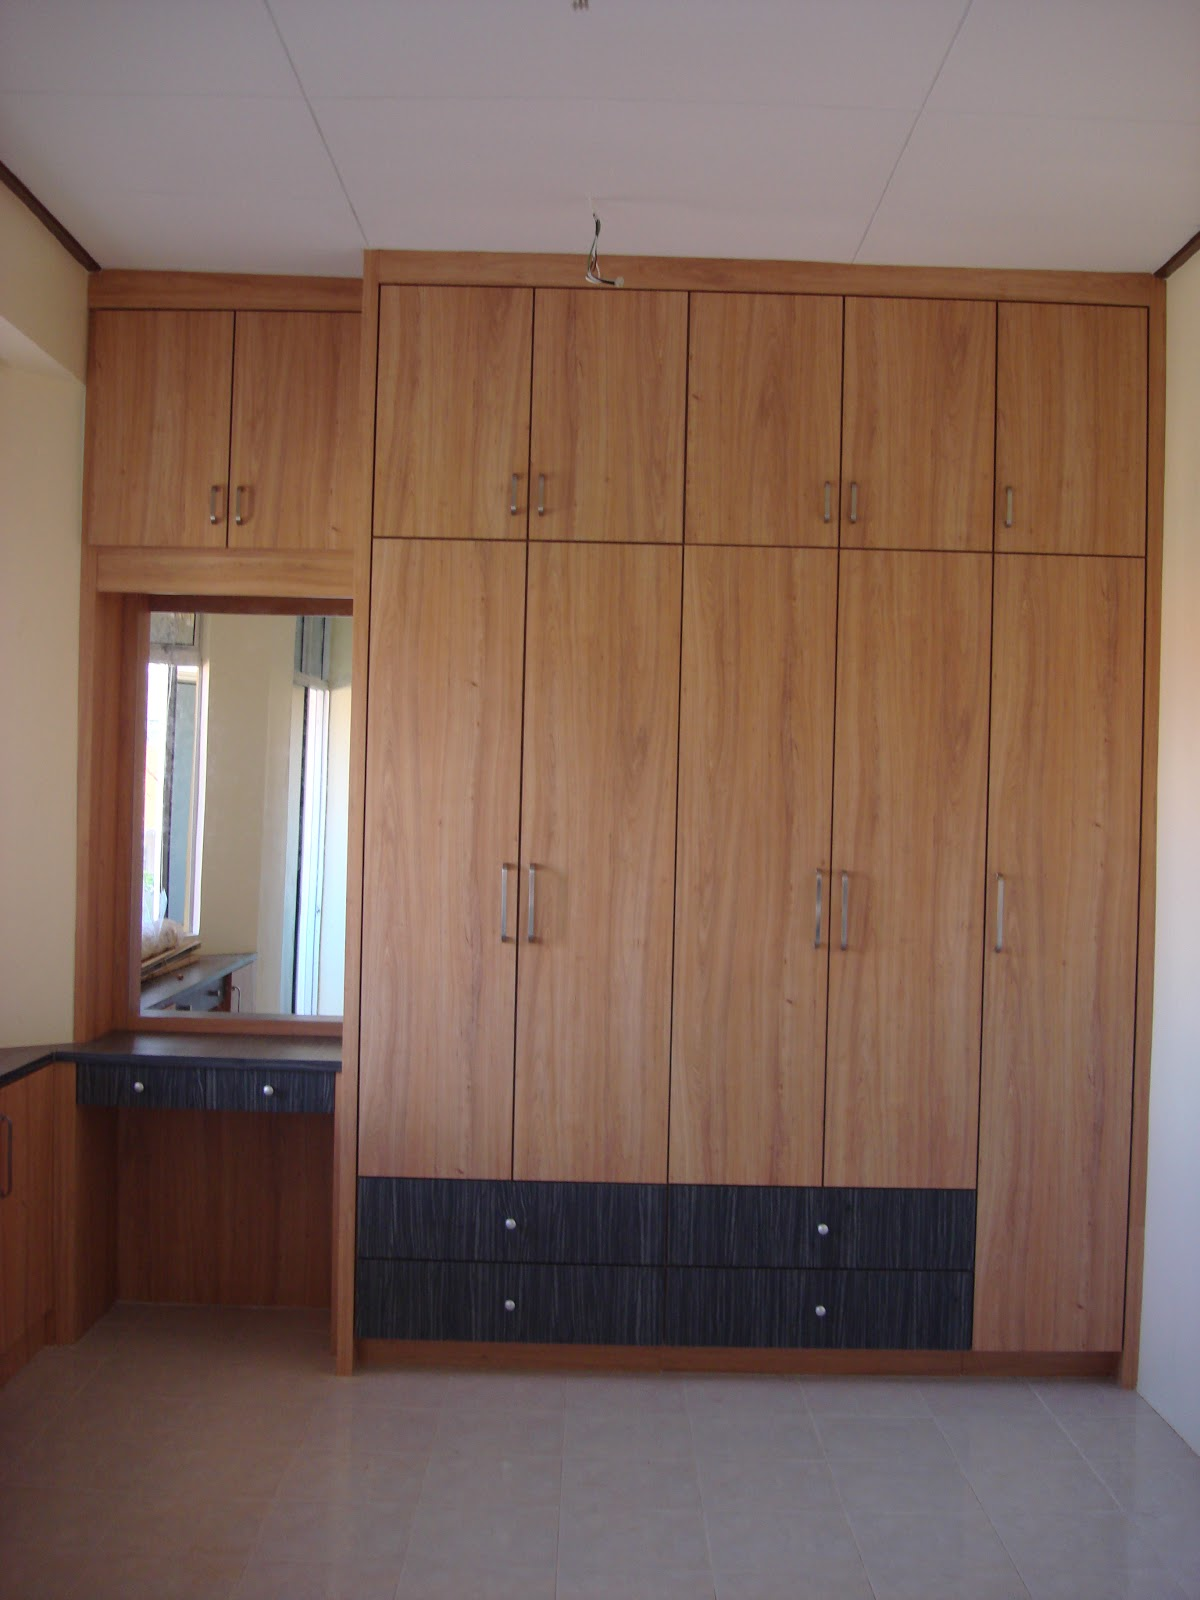 There's a perfect bedroom here for every style of home. Interior Design & Renovation Kuala Terengganu: Kitchen and